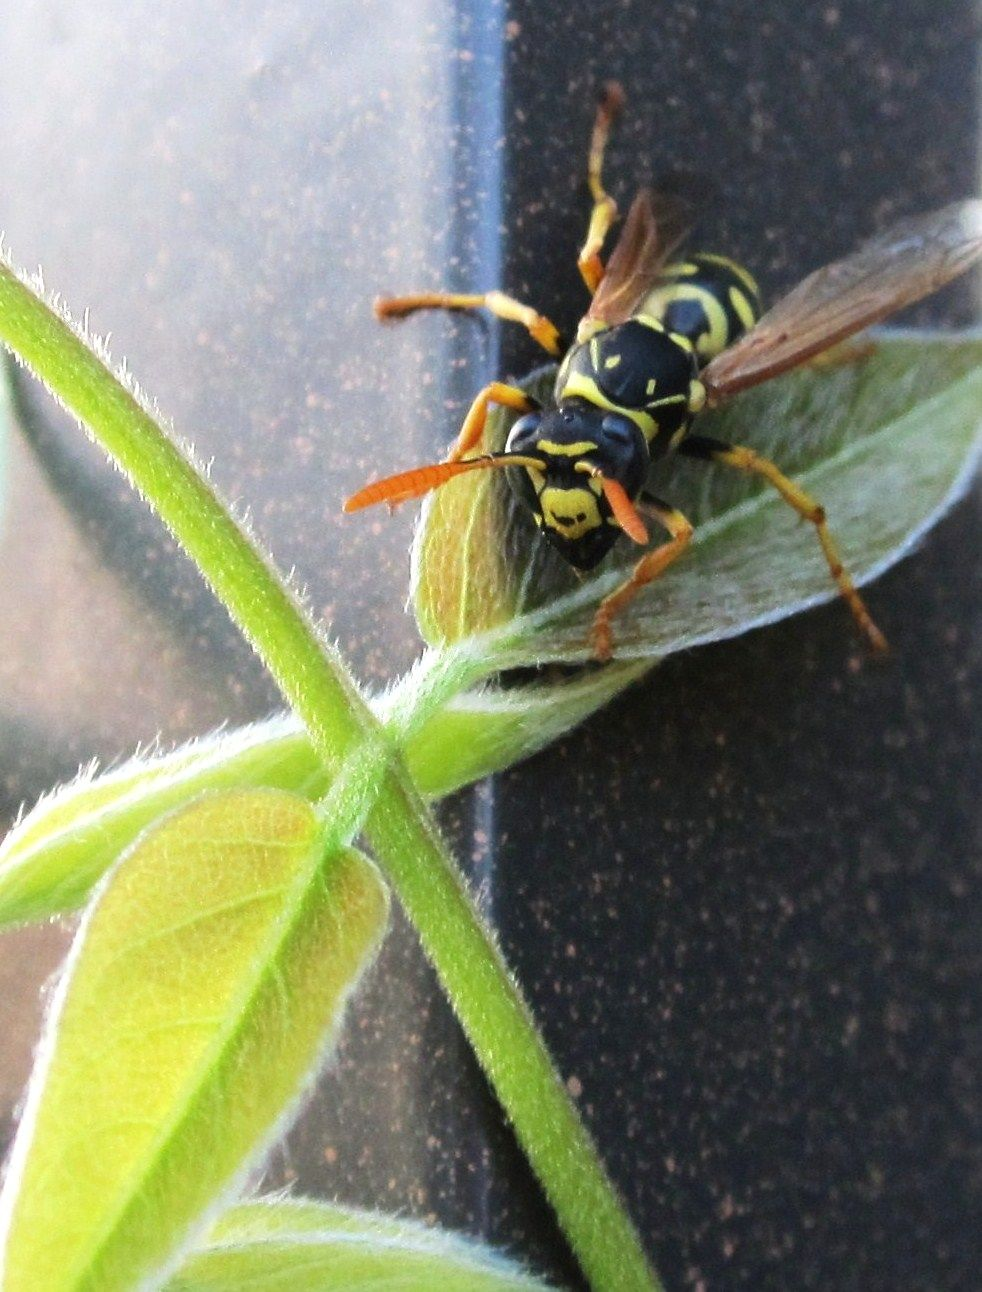 How to Make a Chemical Free Wasp Trap Wasp traps, Wasp